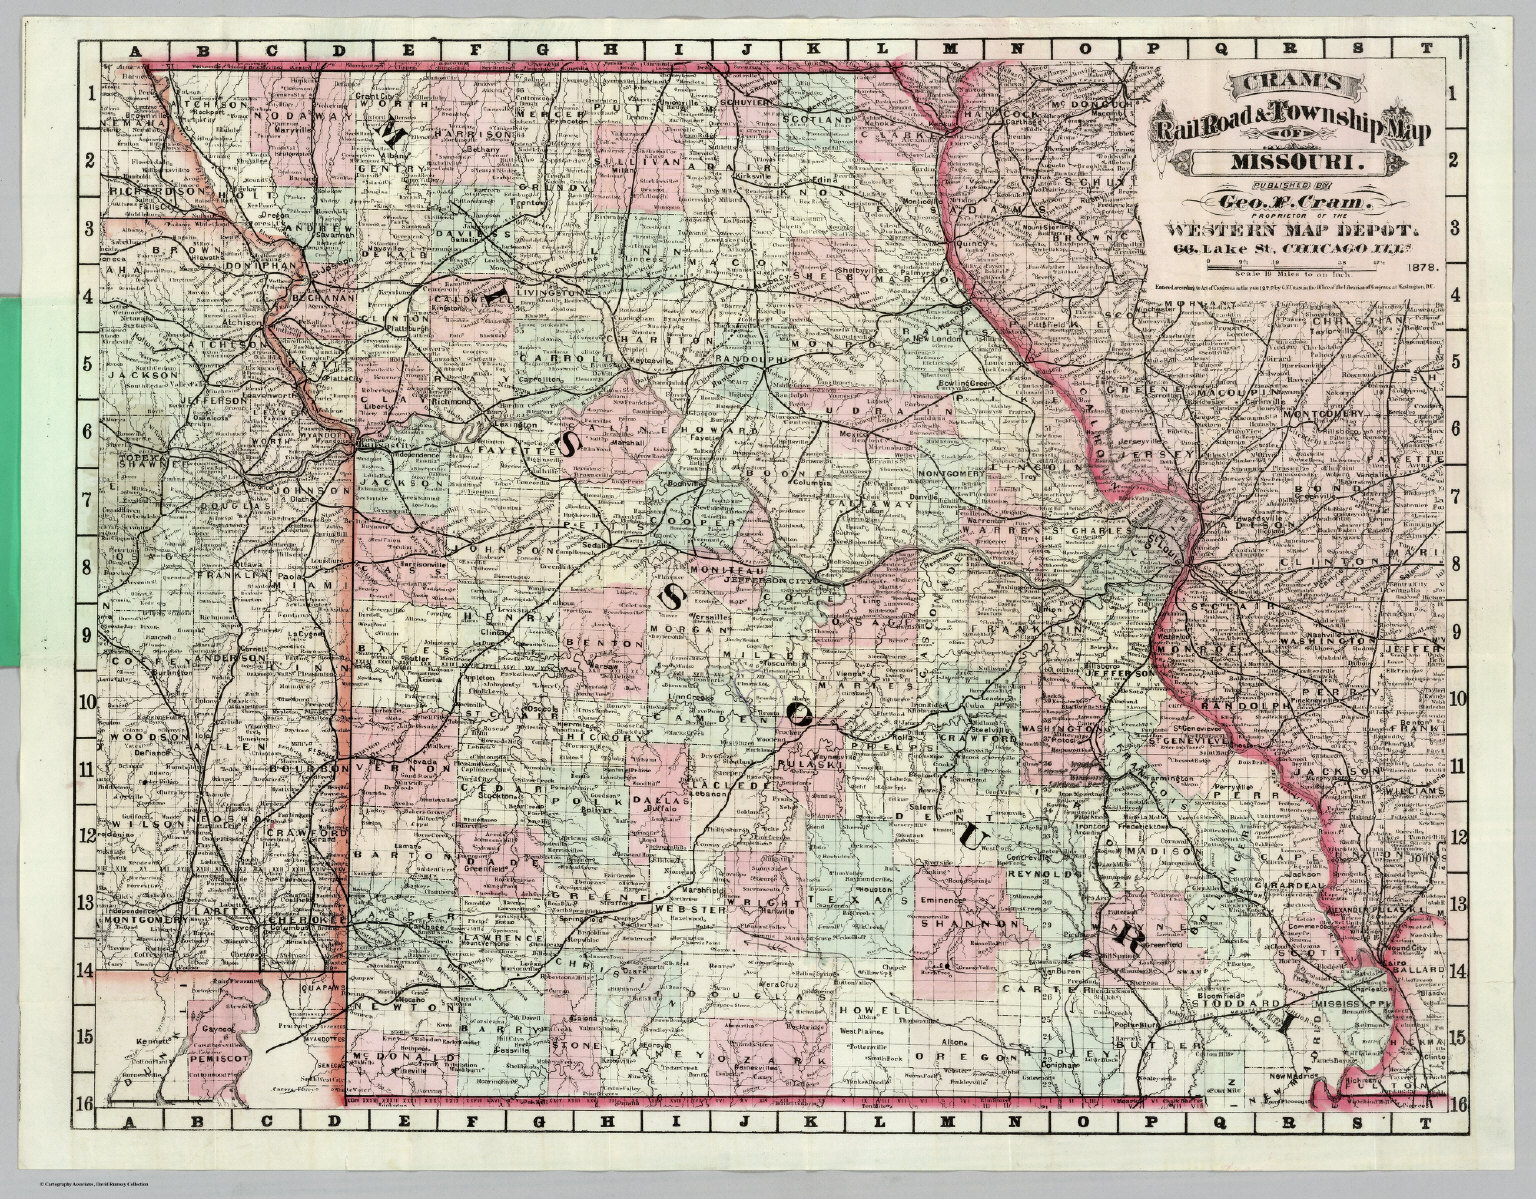 Rail Road And Township Map Of Missouri David Rumsey Historical - Missouri road map